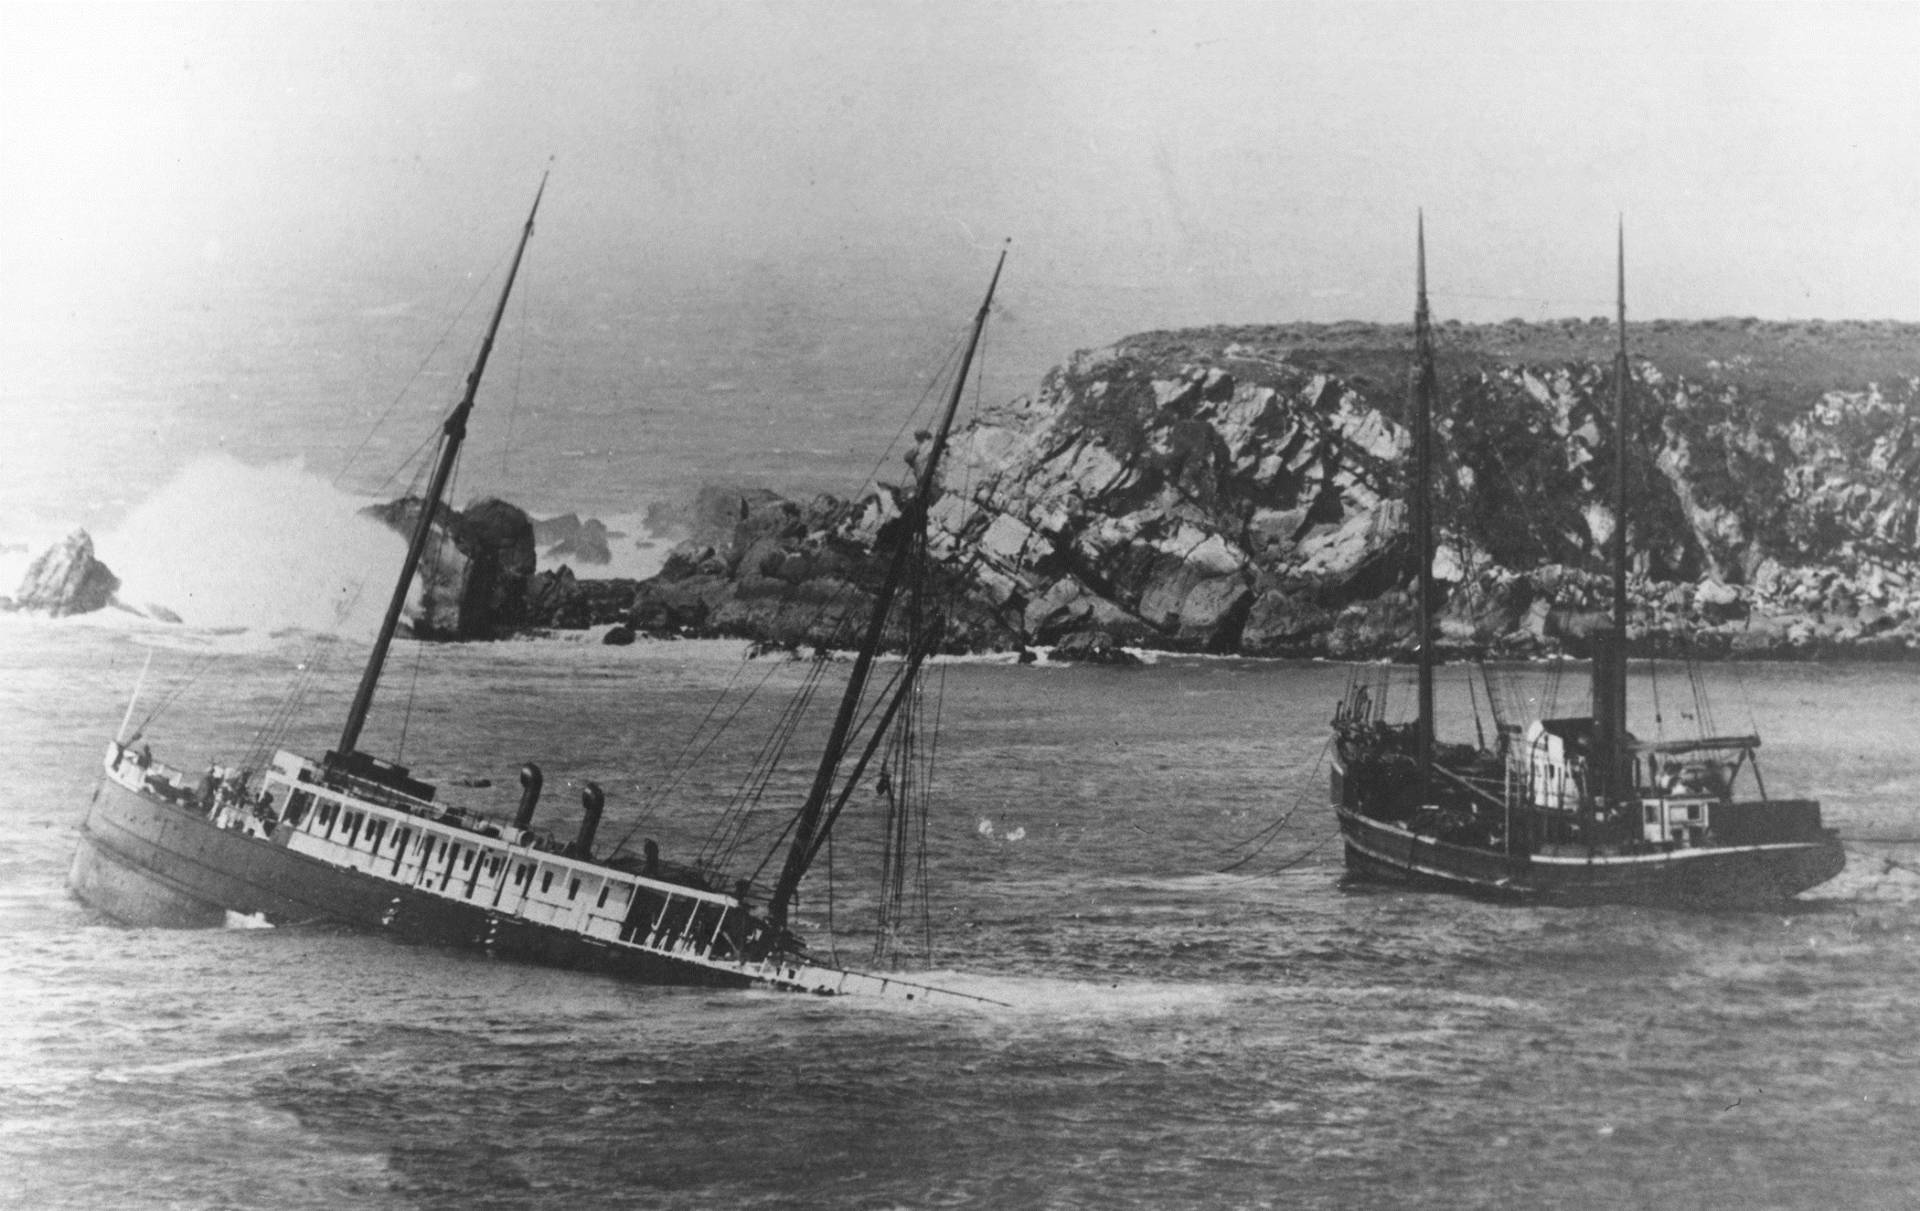 The 225-foot long steel-hulled coastal steamship Pomona sinks off Fort Ross cove on March 17, 1908 after hitting a submerged pinnacle.  Fort Ross Conservancy